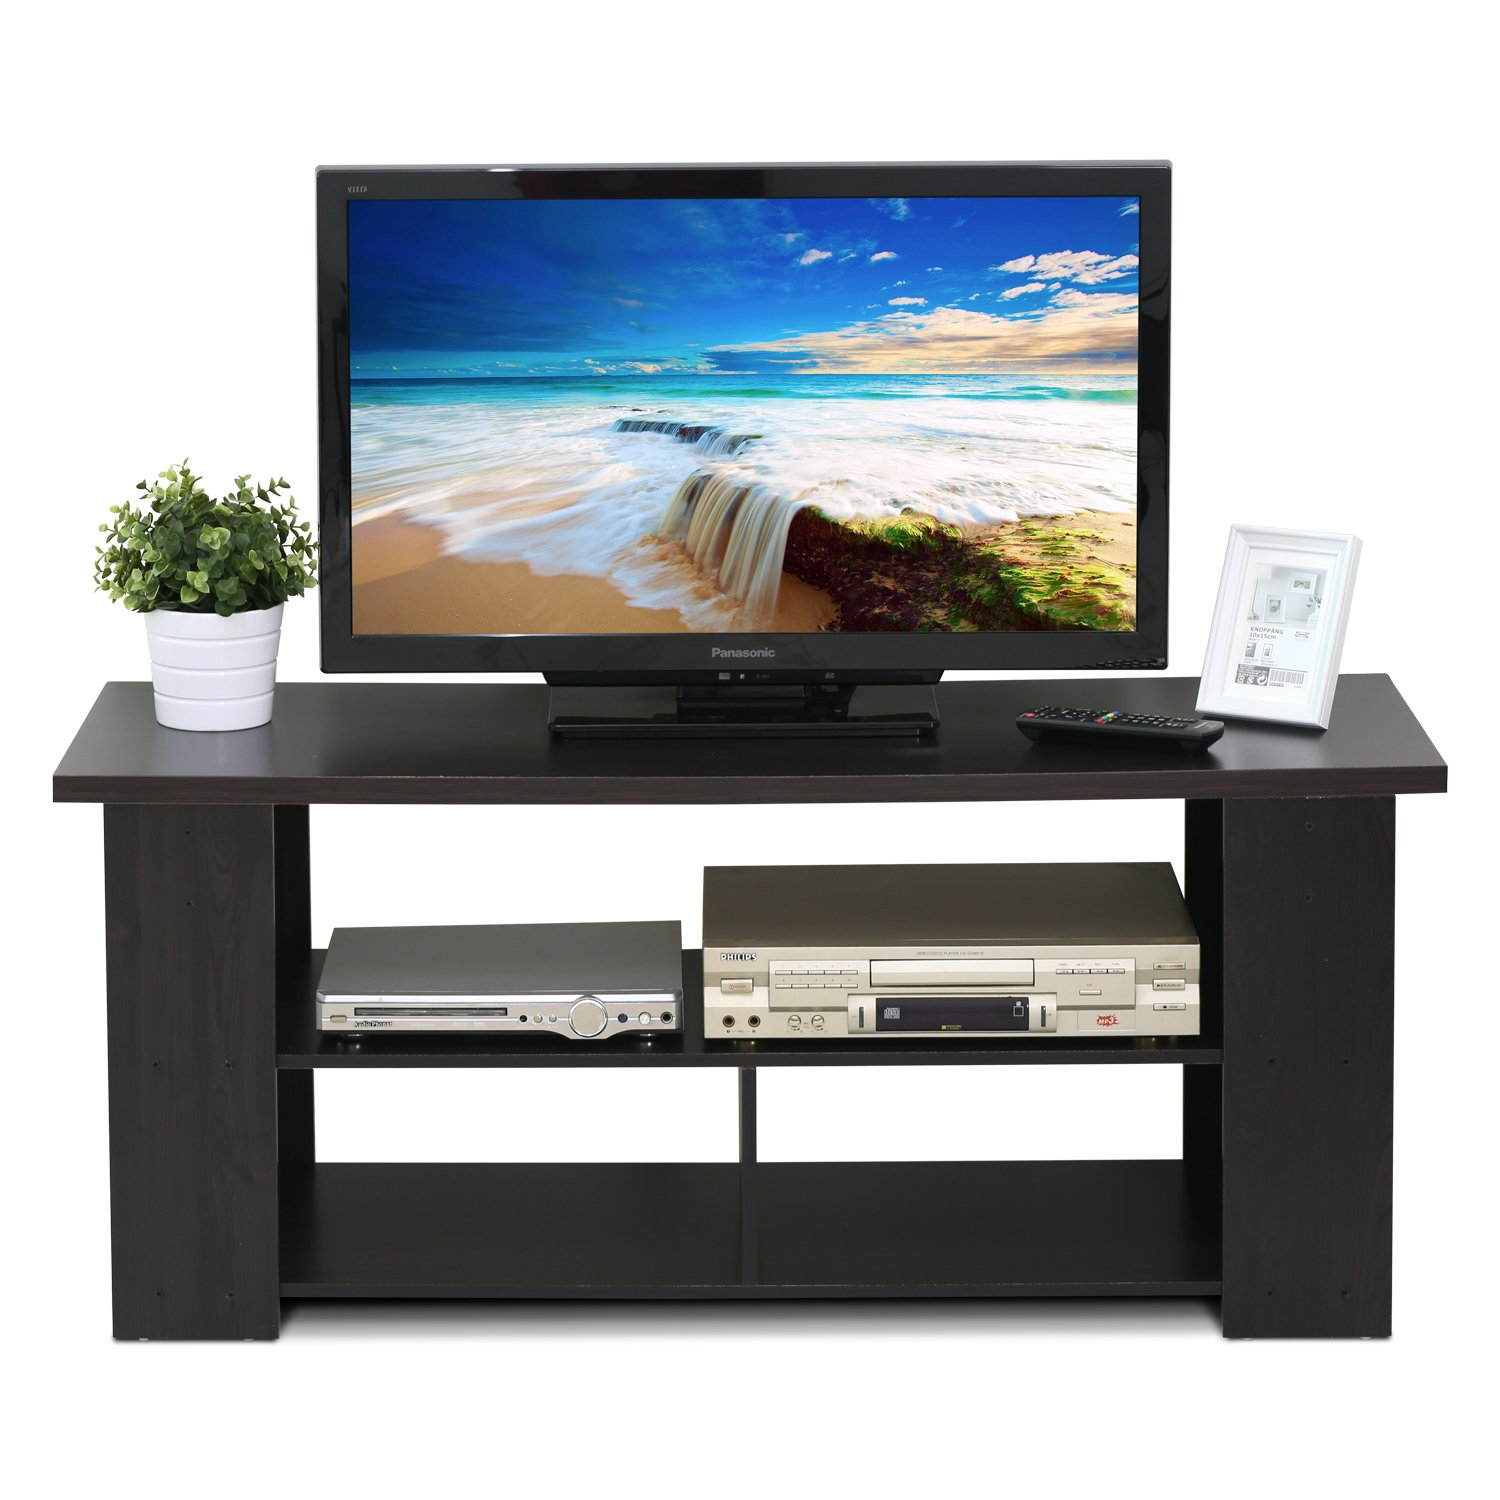 TV Stand Unit Cabinet, Fits Up To 50 In. Television with Mou